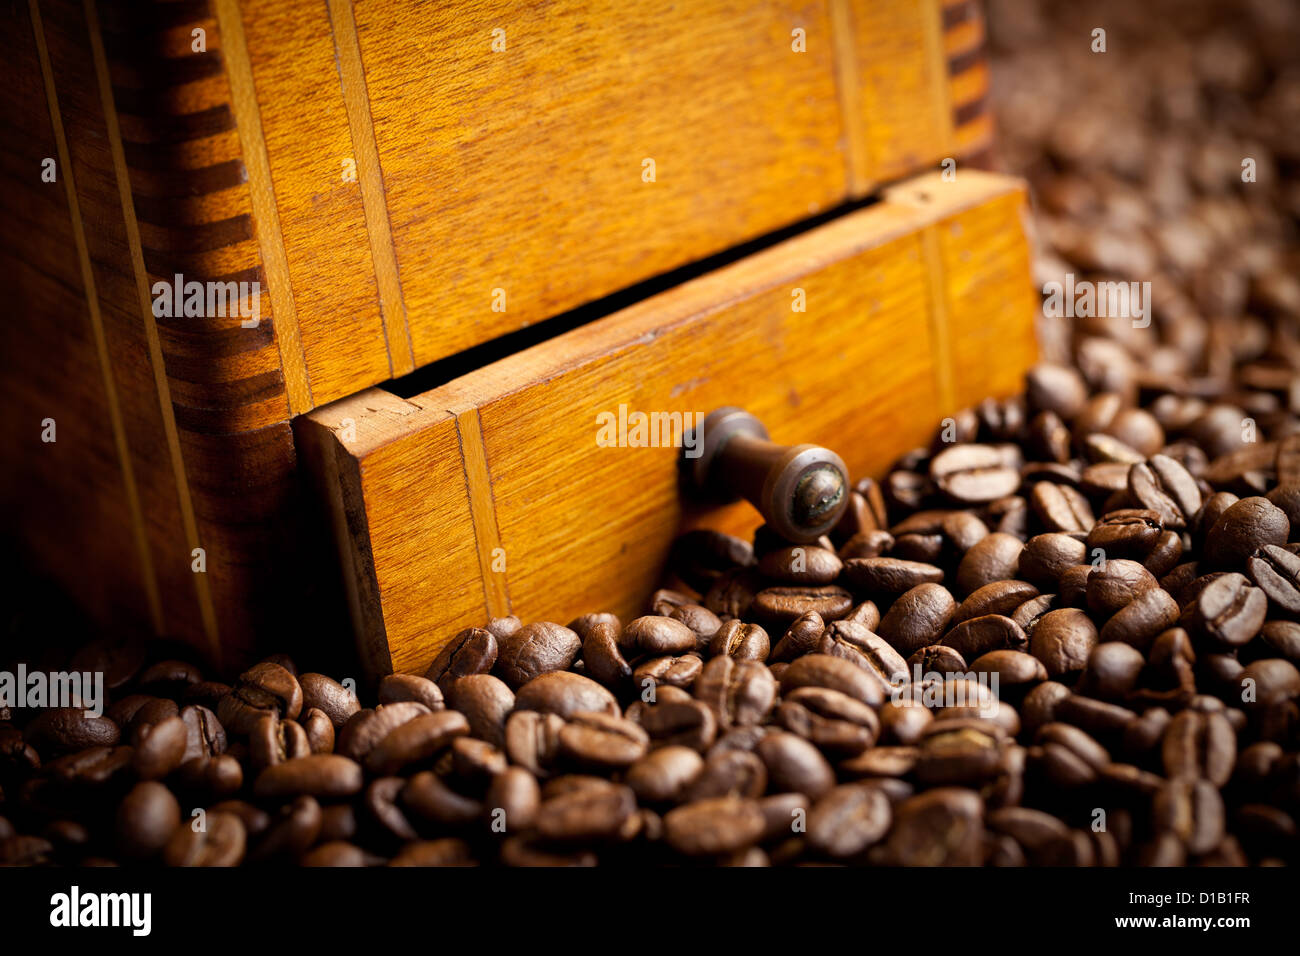 the detail of antique coffee mill - Stock Image